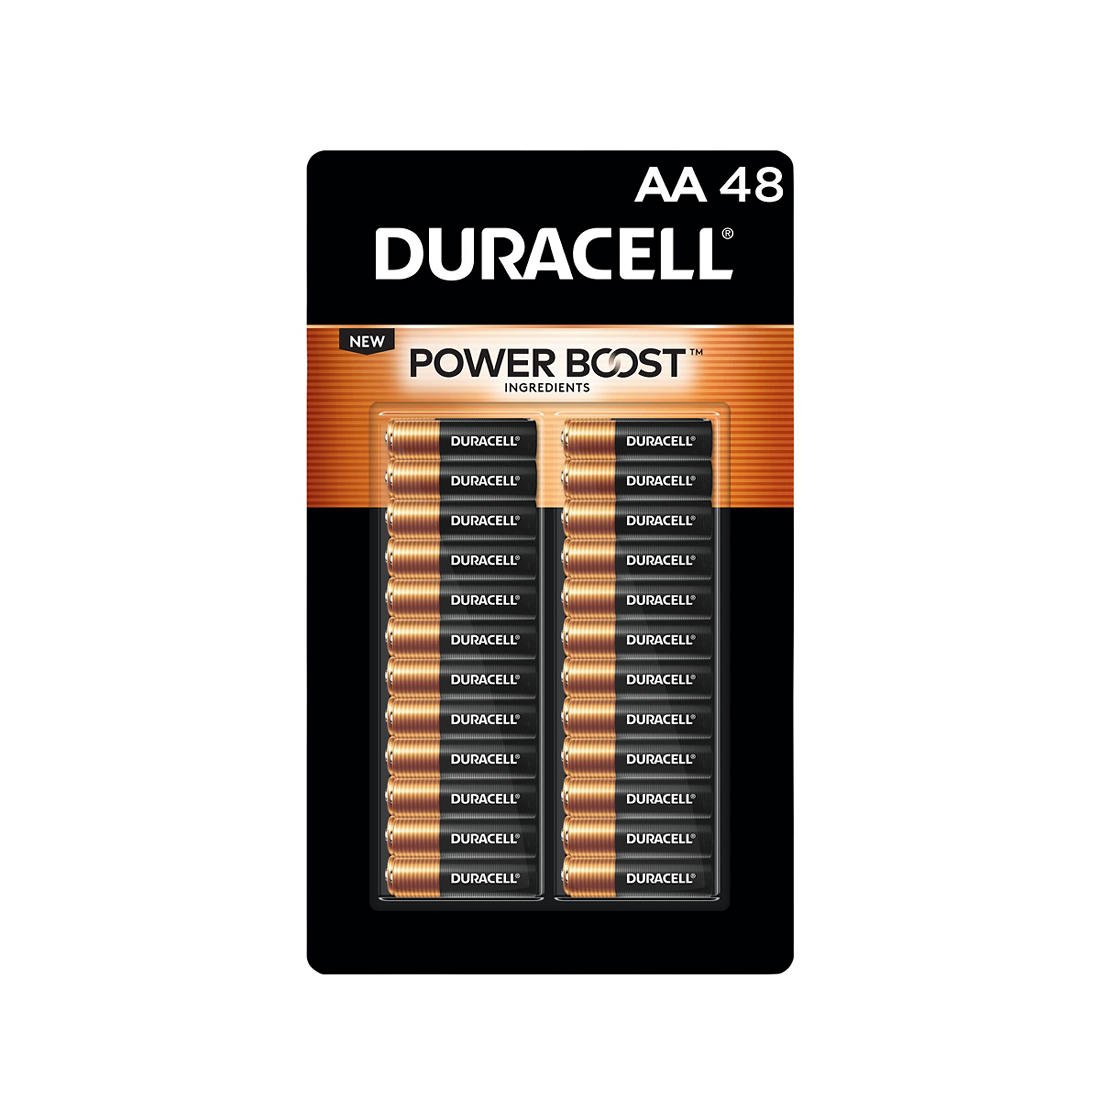 photo about Duracell Coupons Printable named Duracell CopperTop AA Batteries, 48 ct.